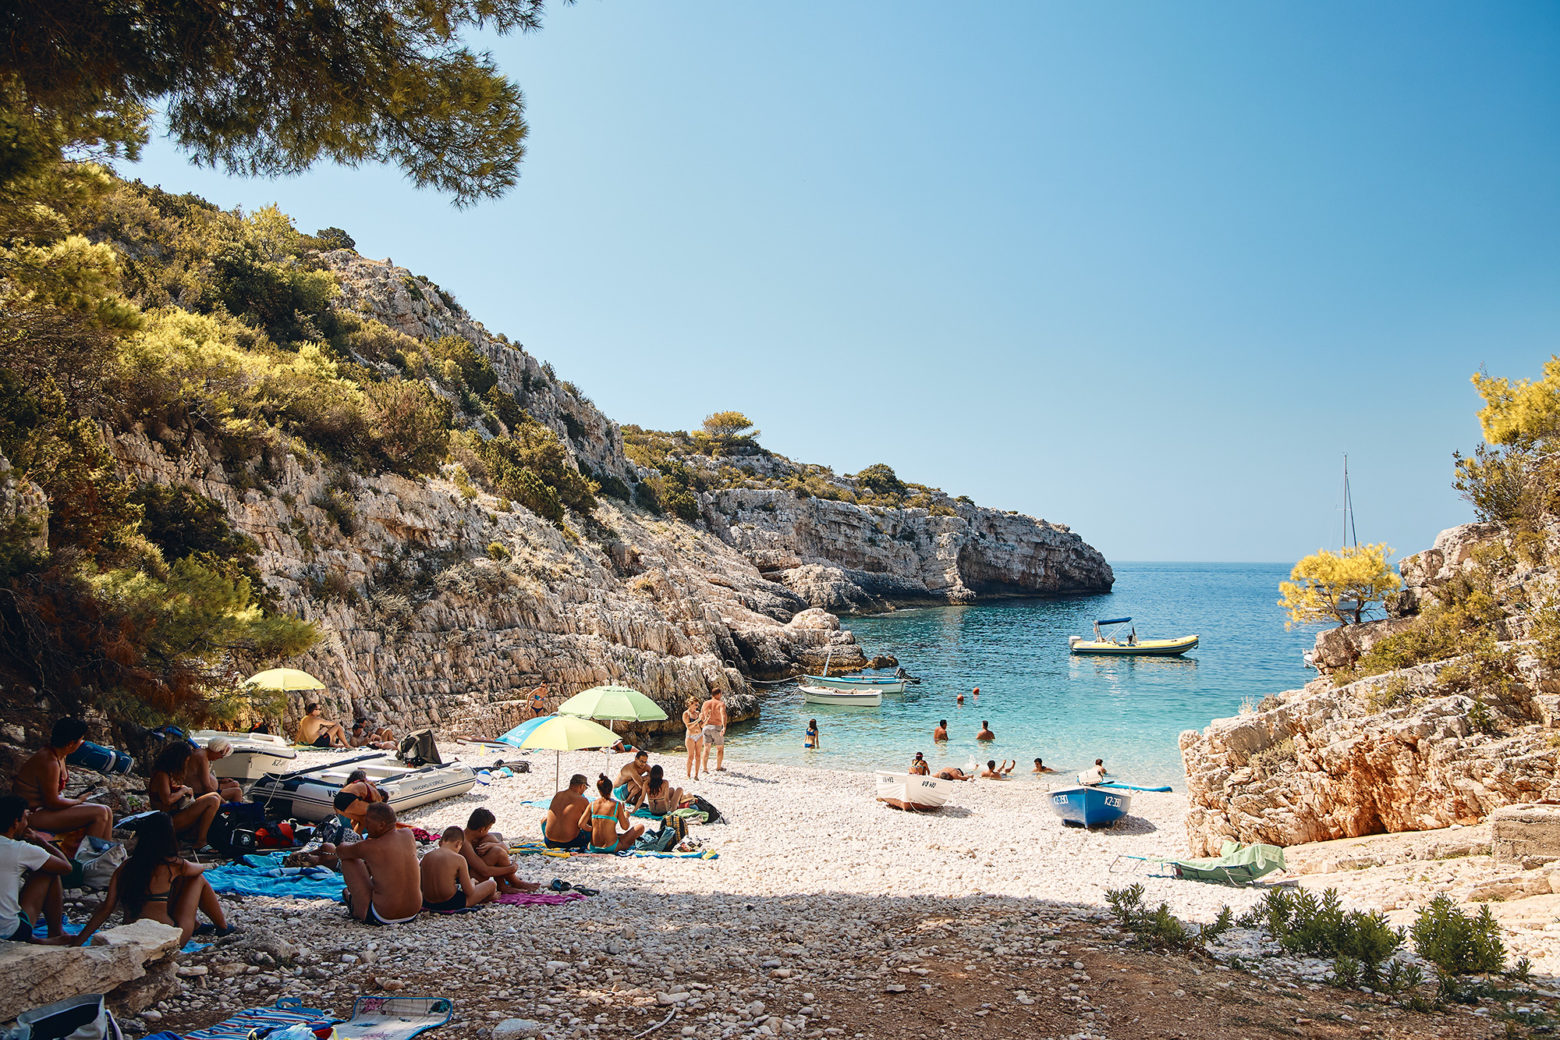 Small beach on the island of Vis